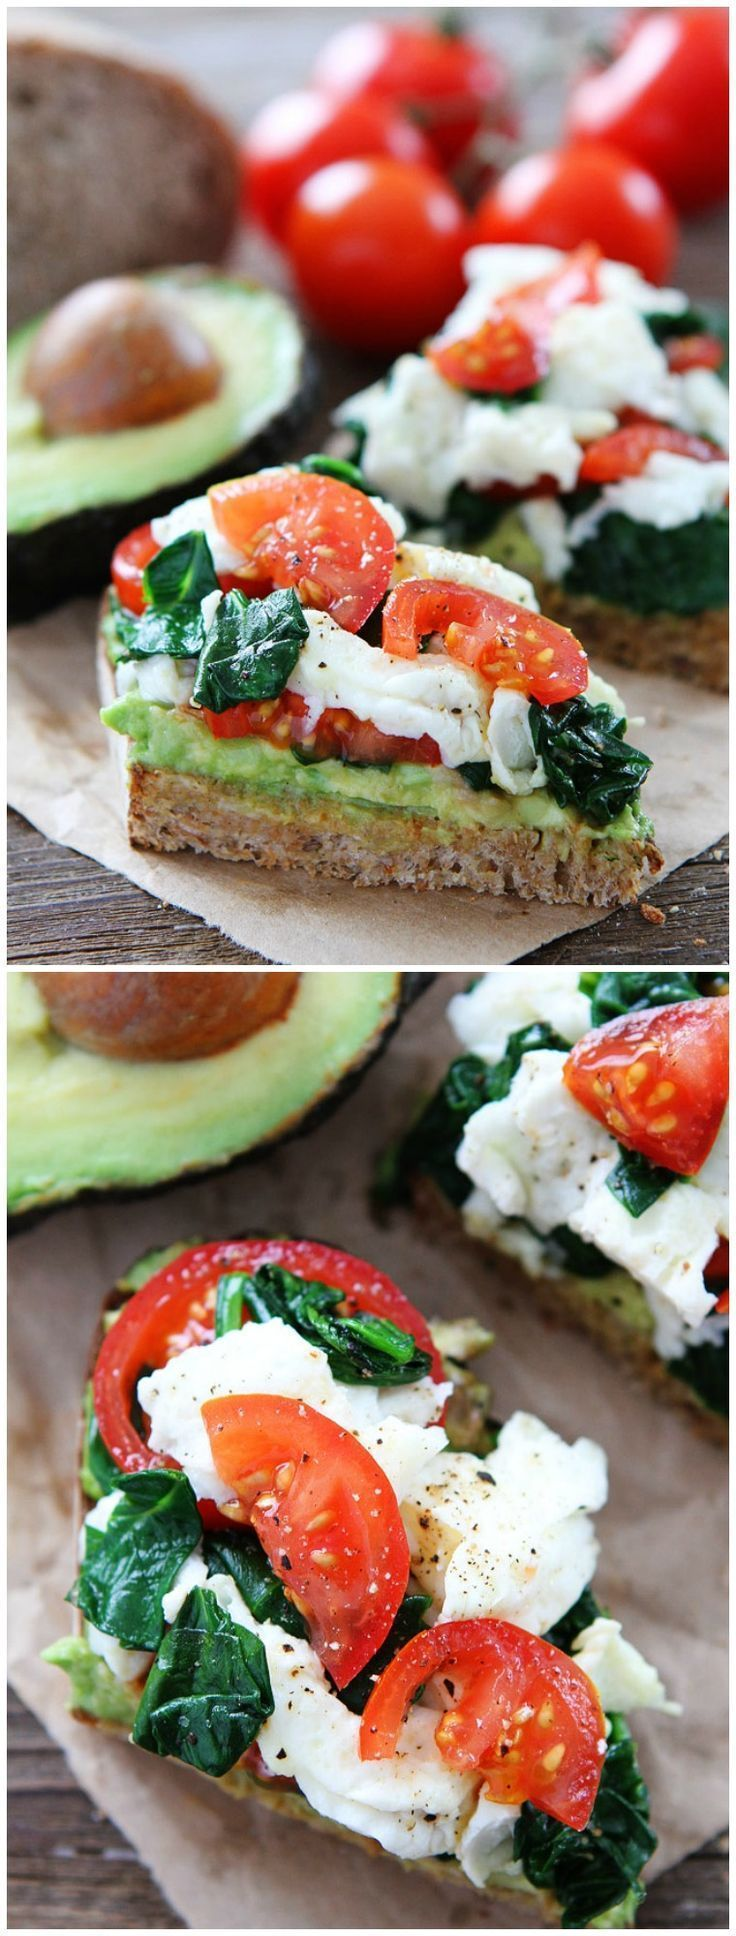 (Tostada de palta con huevos, espinaca y tomate) Avocado Toast with Eggs, Spinach, and Tomatoes. Recipe on http://twopeasandtheirpod.com